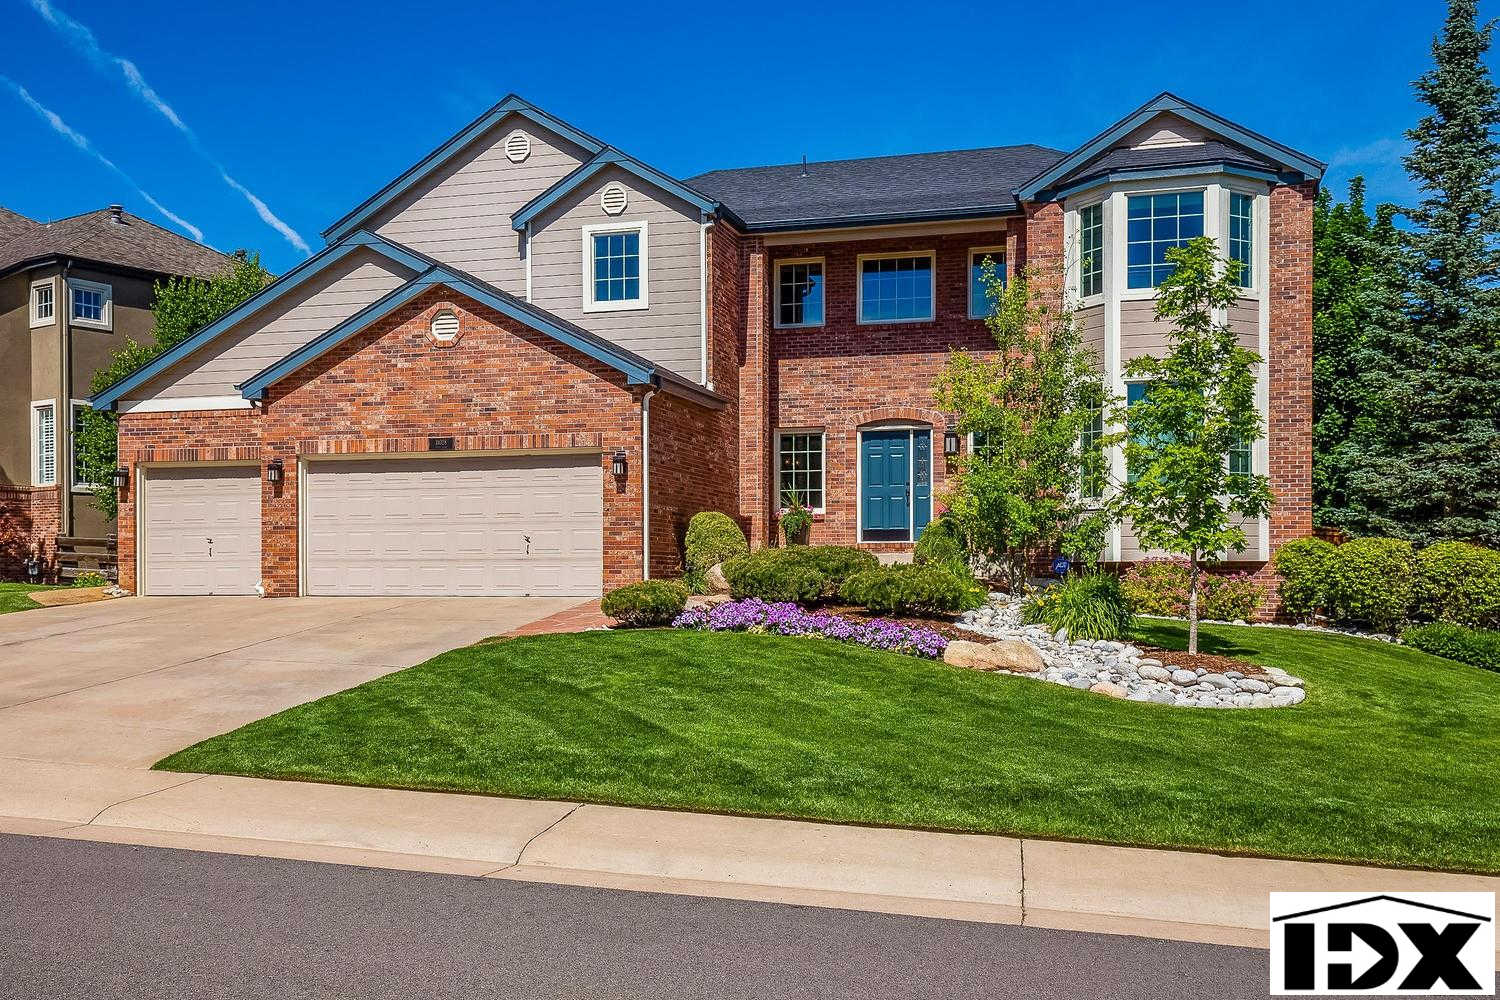 11028 Puma Run, Littleton, CO 80124 now has a new price of $830,000!